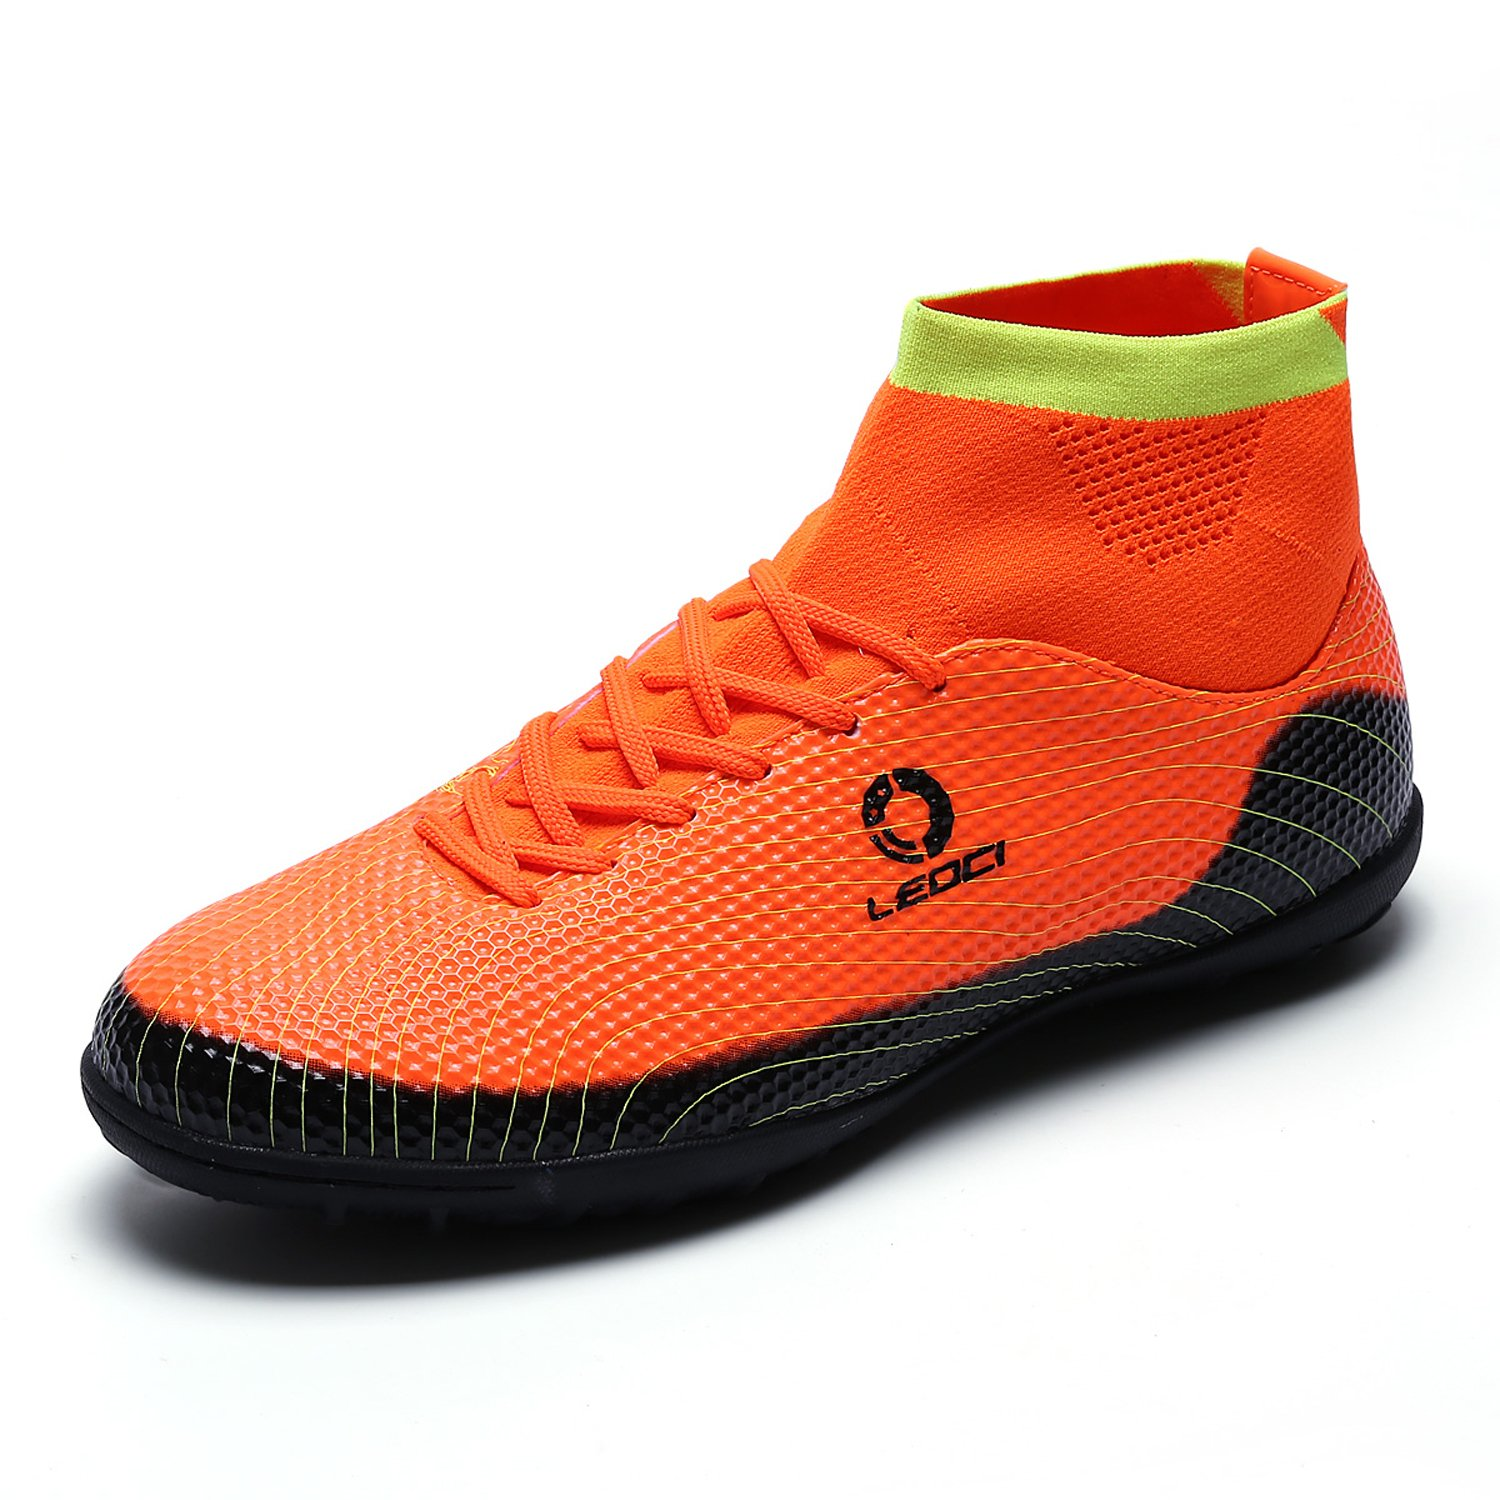 OUYAJI メンズ B01NCK7HK0 14 B(M) US Women / 10.5 D(M) US Men|オレンジ オレンジ 14 B(M) US Women / 10.5 D(M) US Men